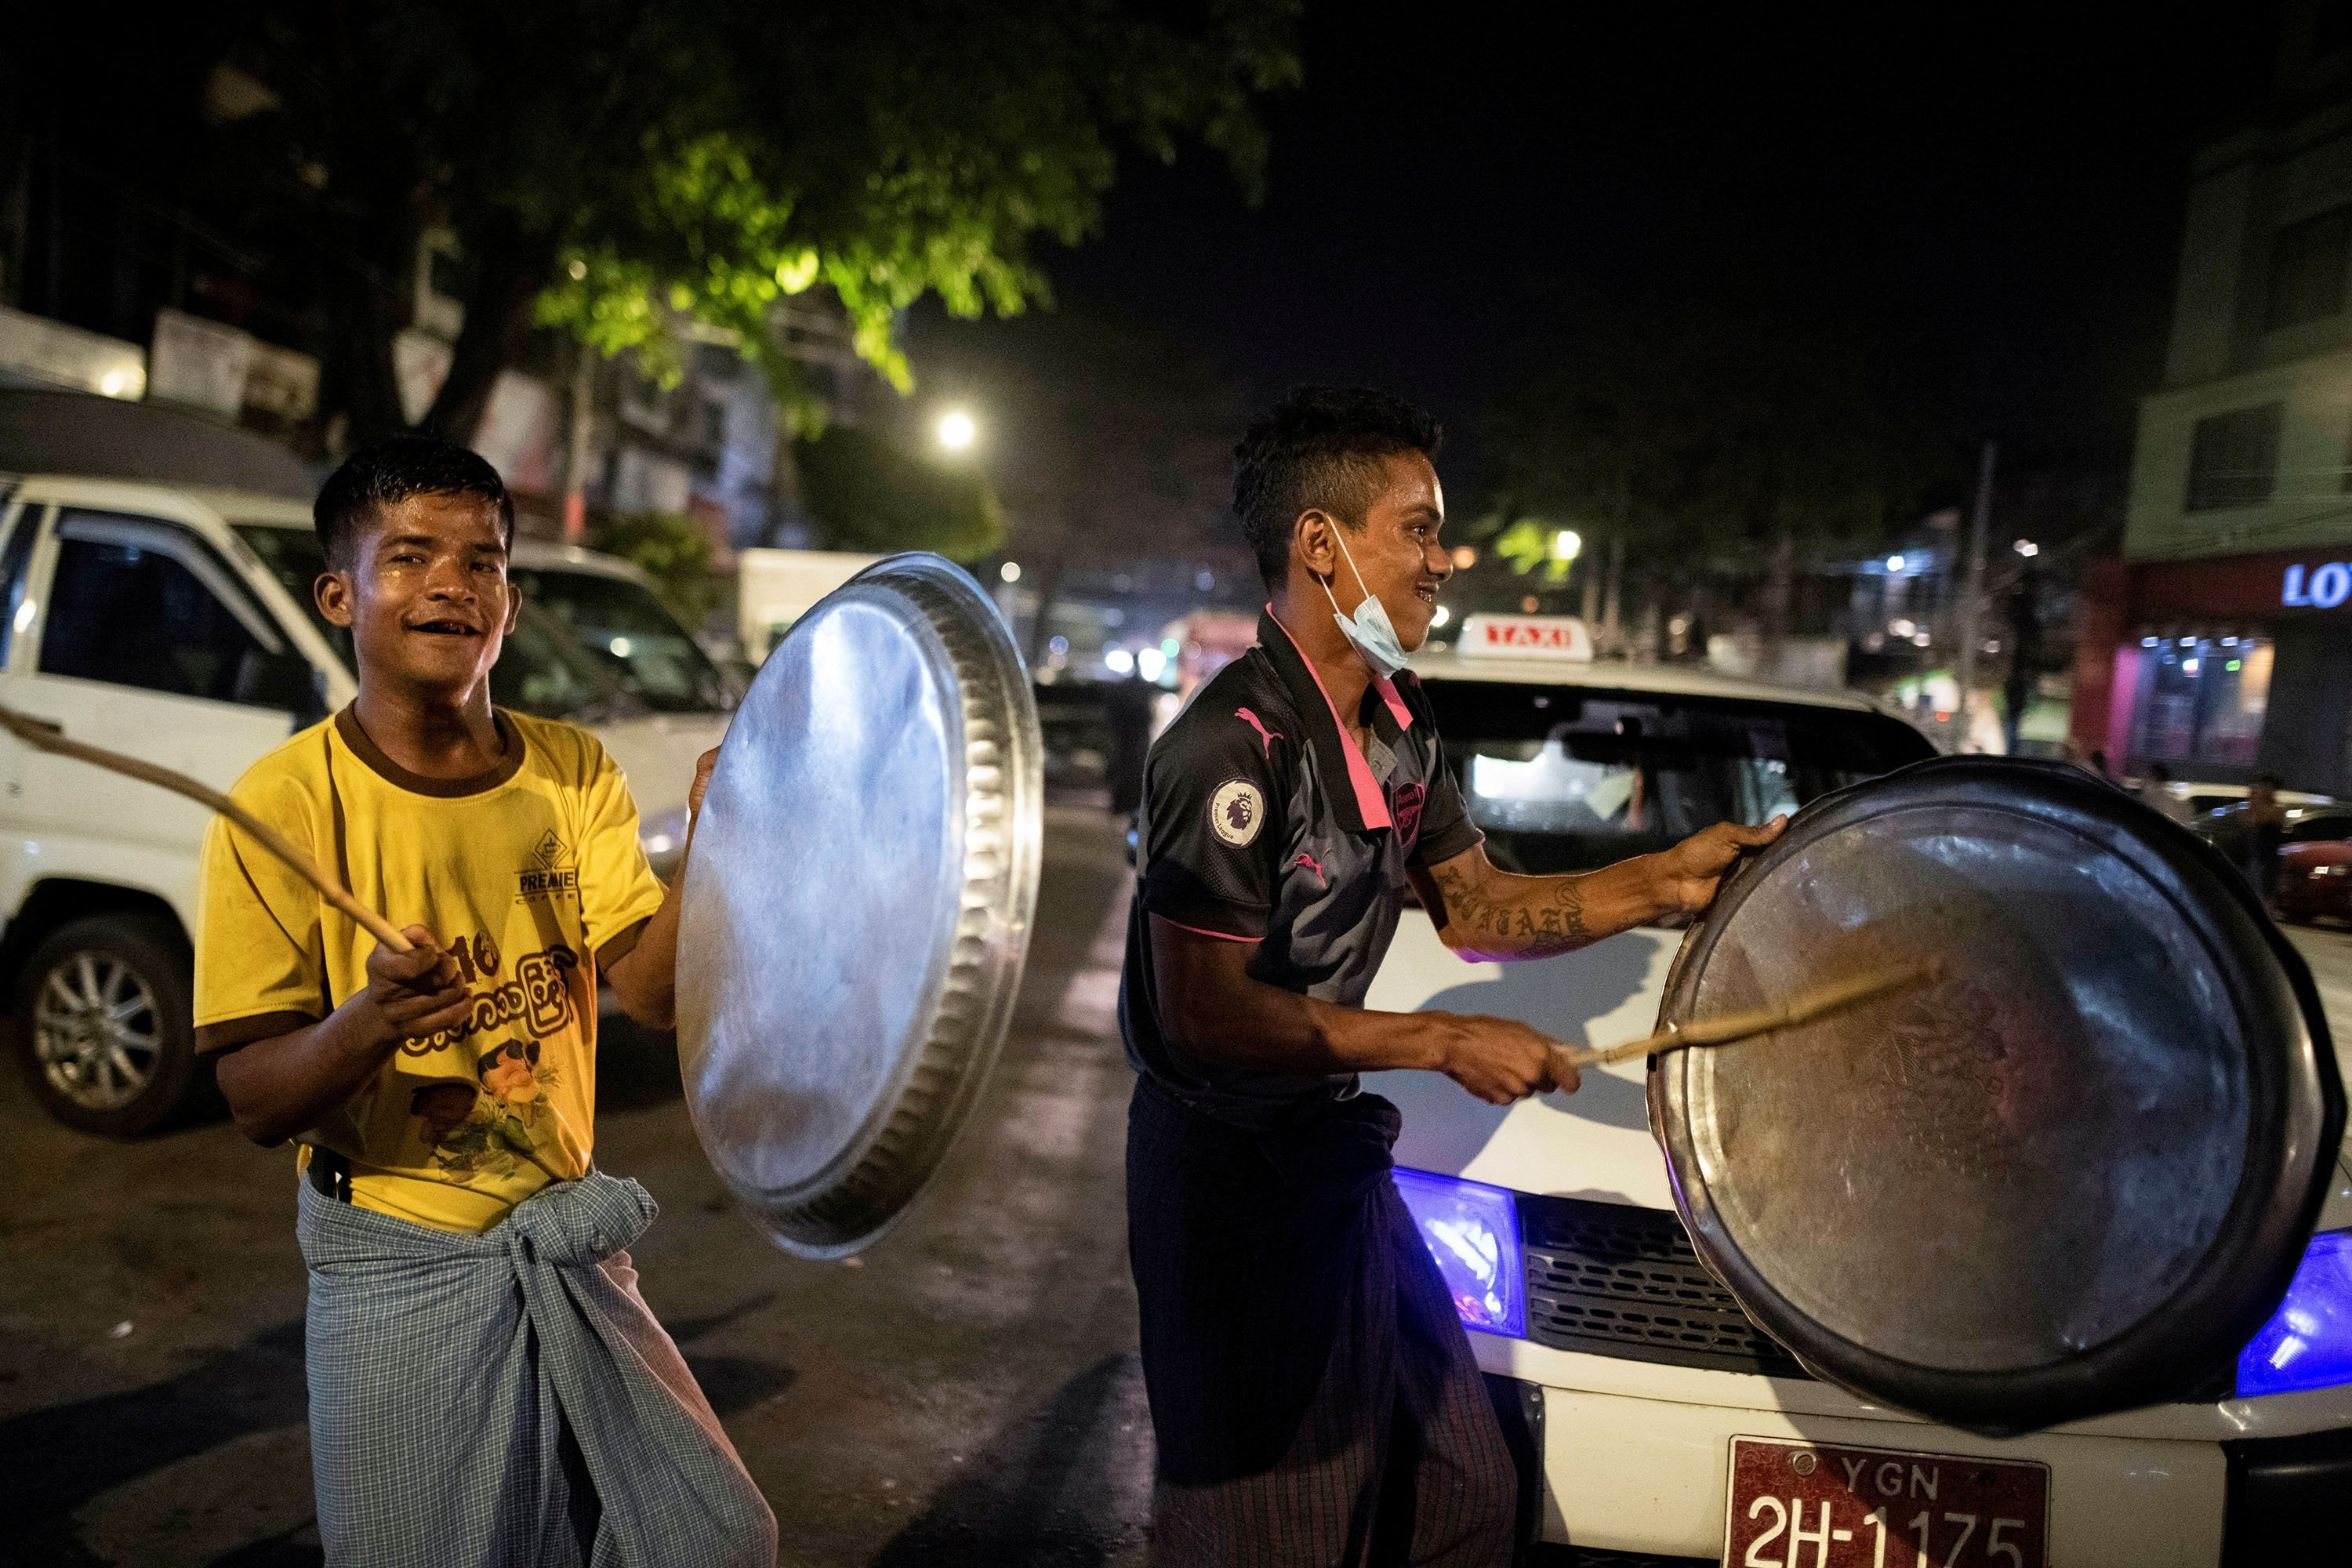 Men hit pots during a night protest against the military coup in Yangon, Myanmar on Feb. 4, 2021. (Reuters Photo)